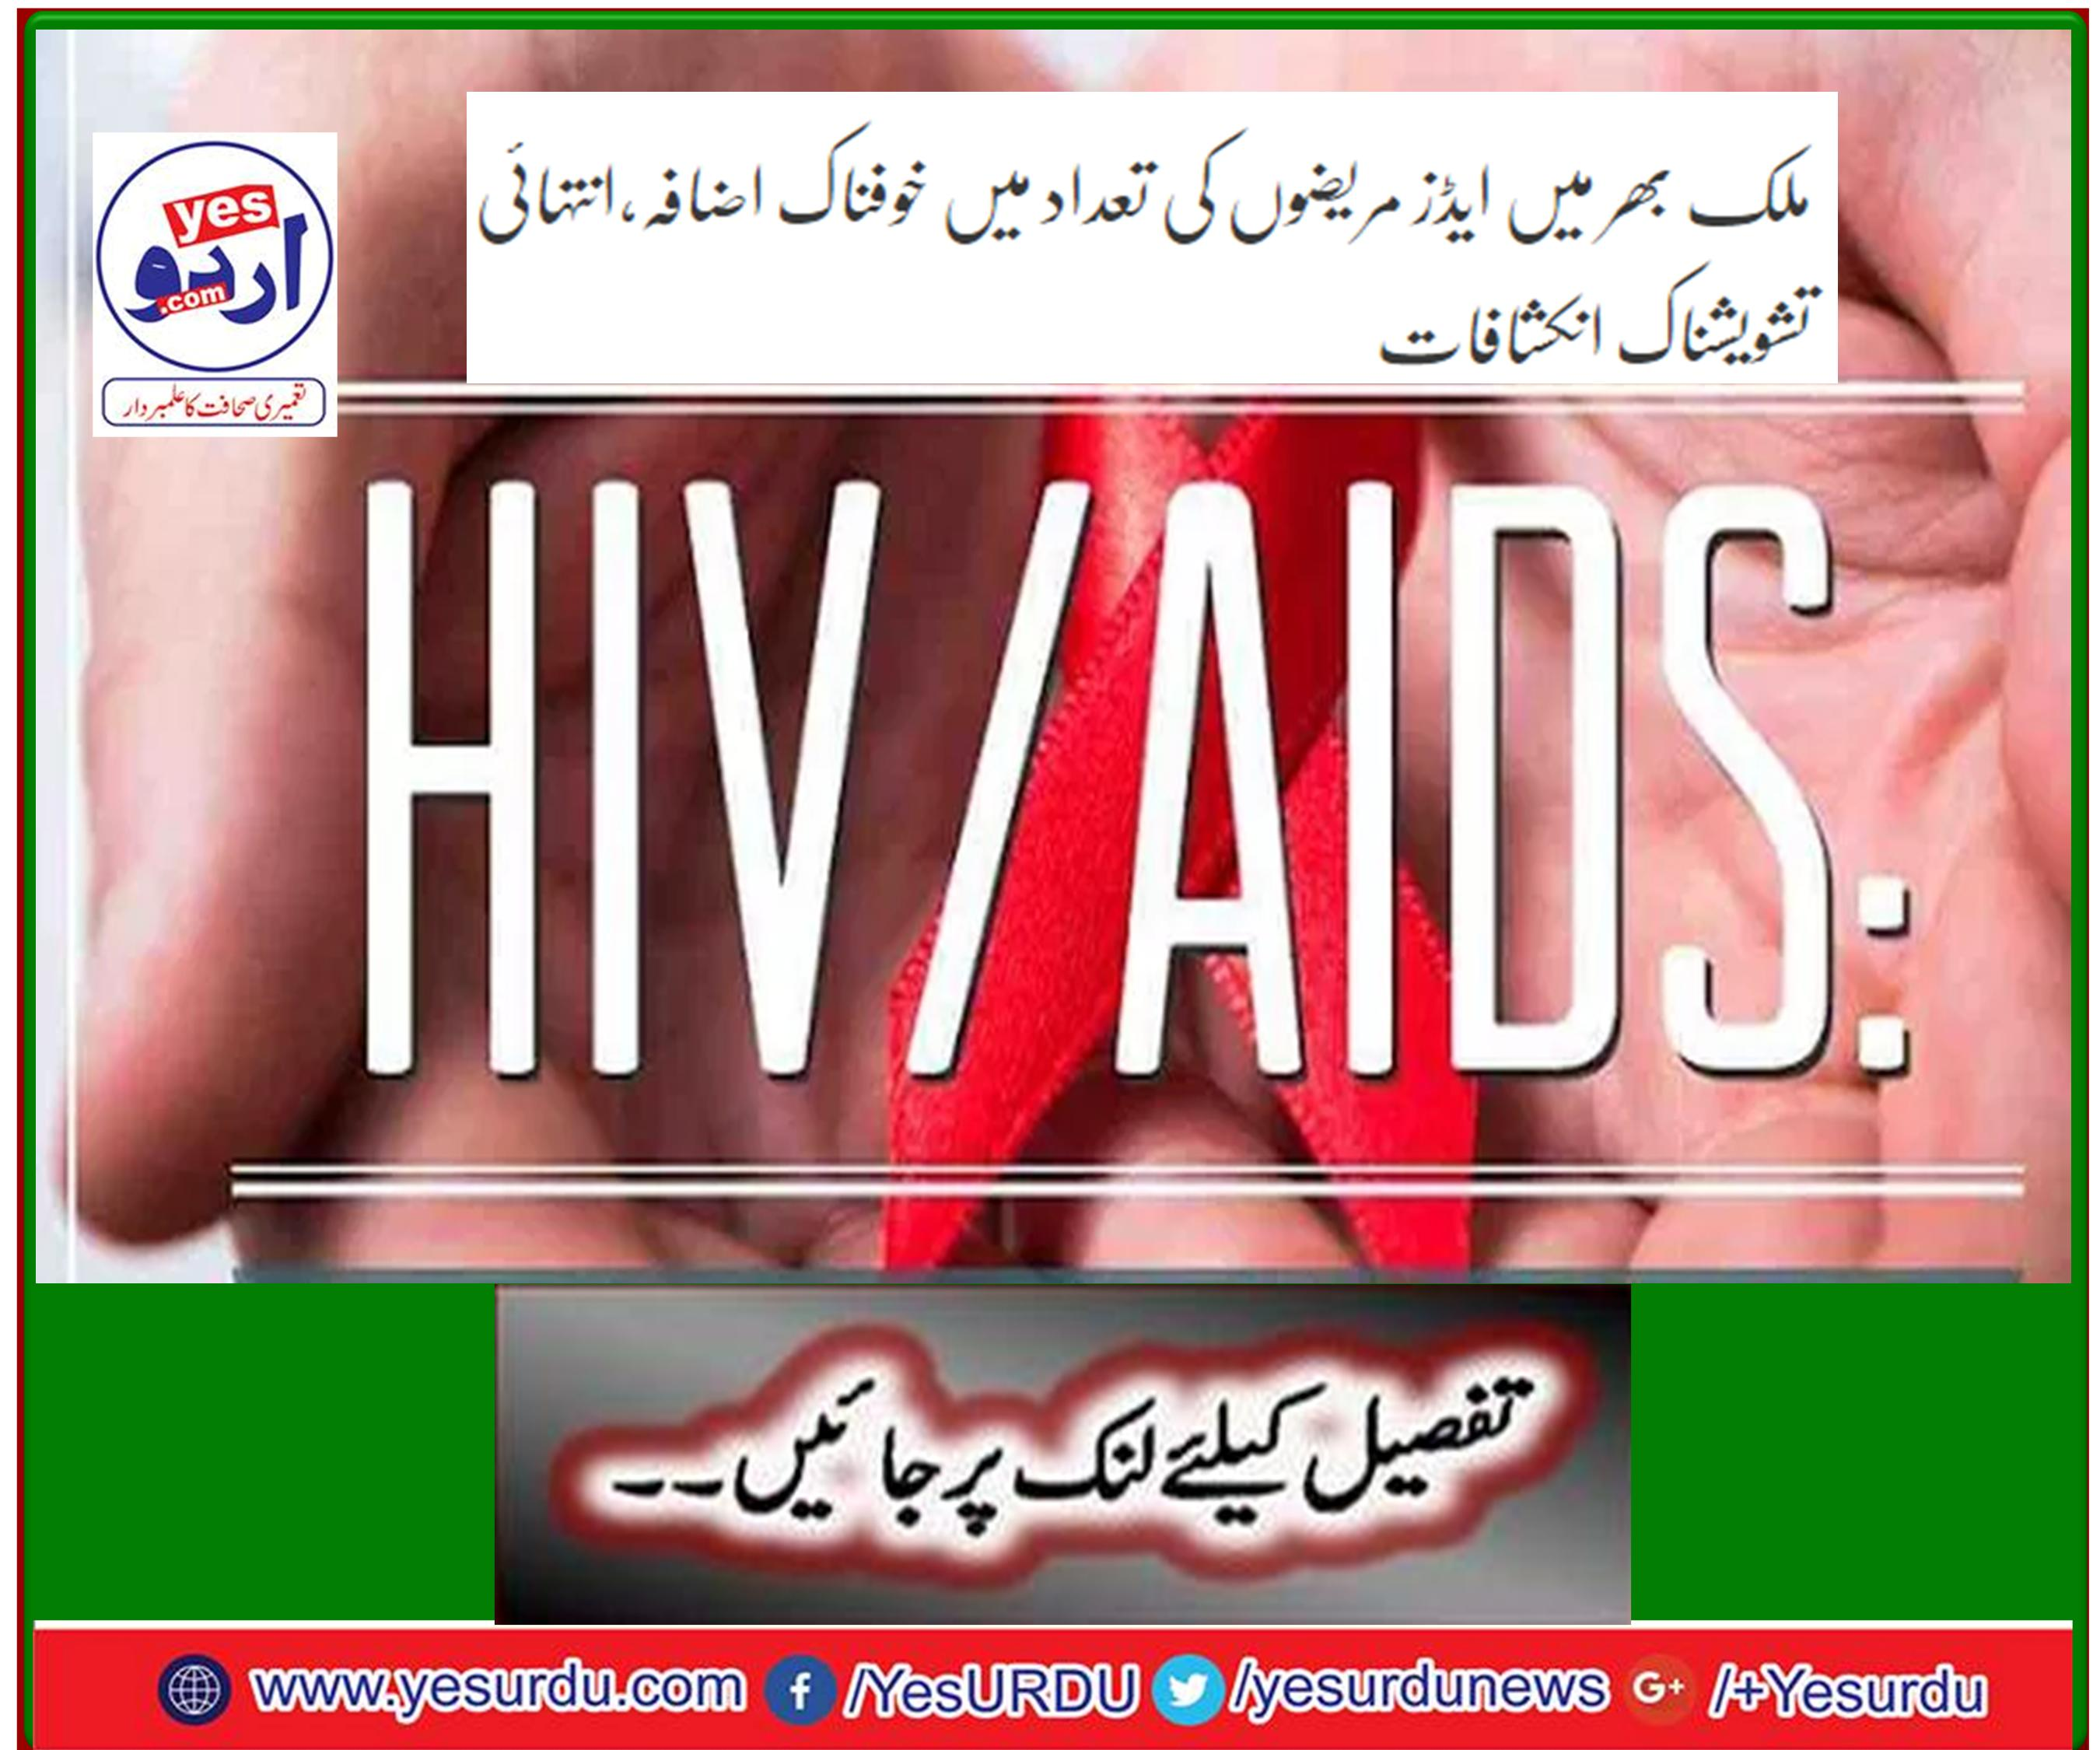 The alarming increase in the number of AIDS patients nationwide, very alarming revelations